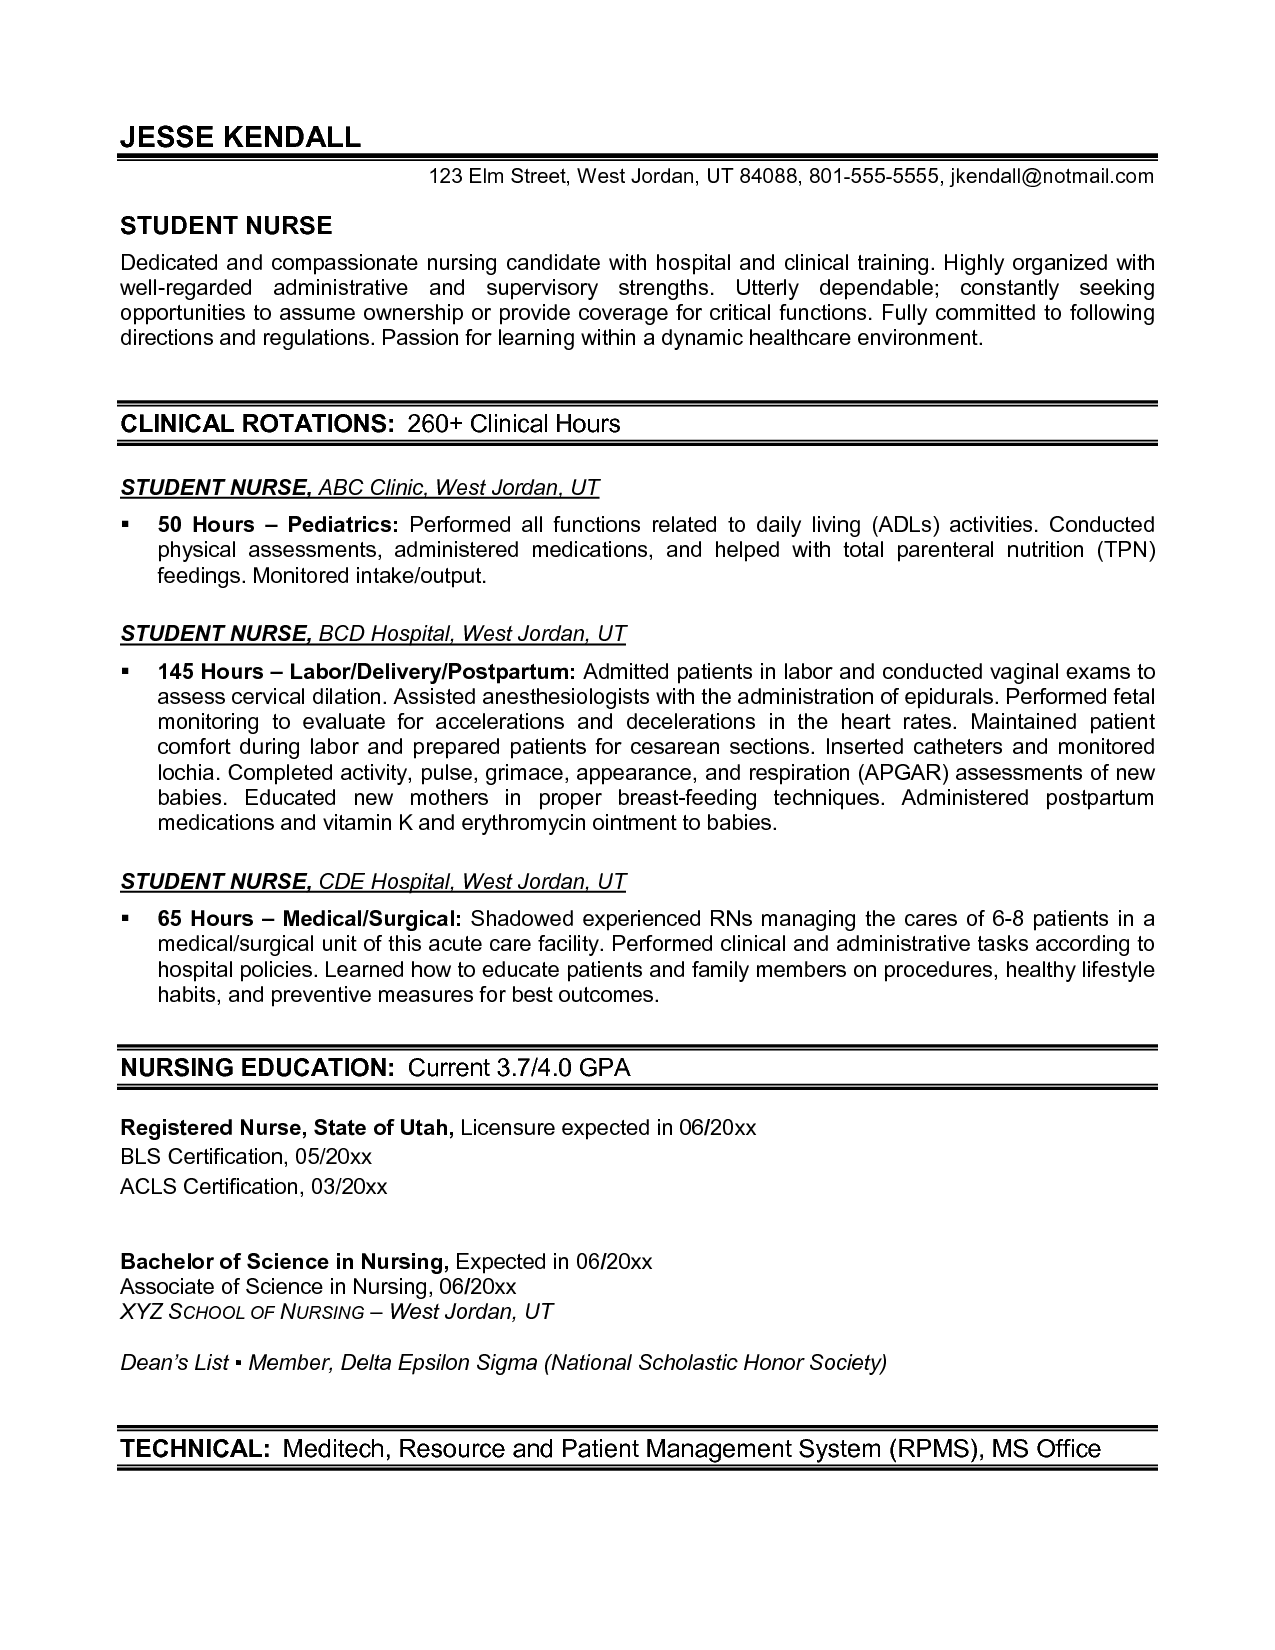 Awesome Resume Template Nursing